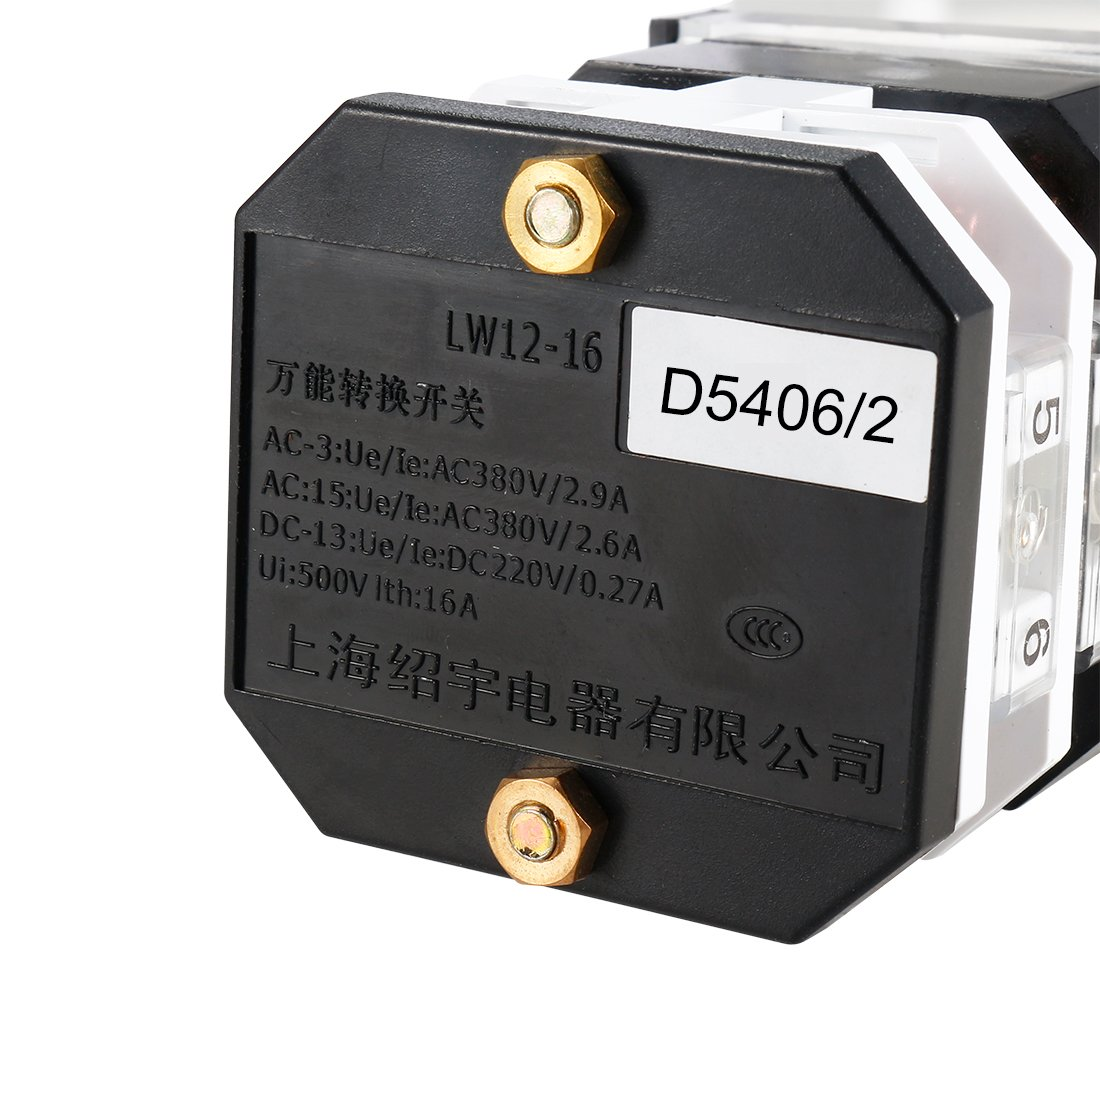 uxcell Changeover Switch LW12-16 D5406//2 3 Position Rotary Selector Cam Switch Panel Mount 8 Terminals Latching Ui 500V Ith 16A a18042500ux0237